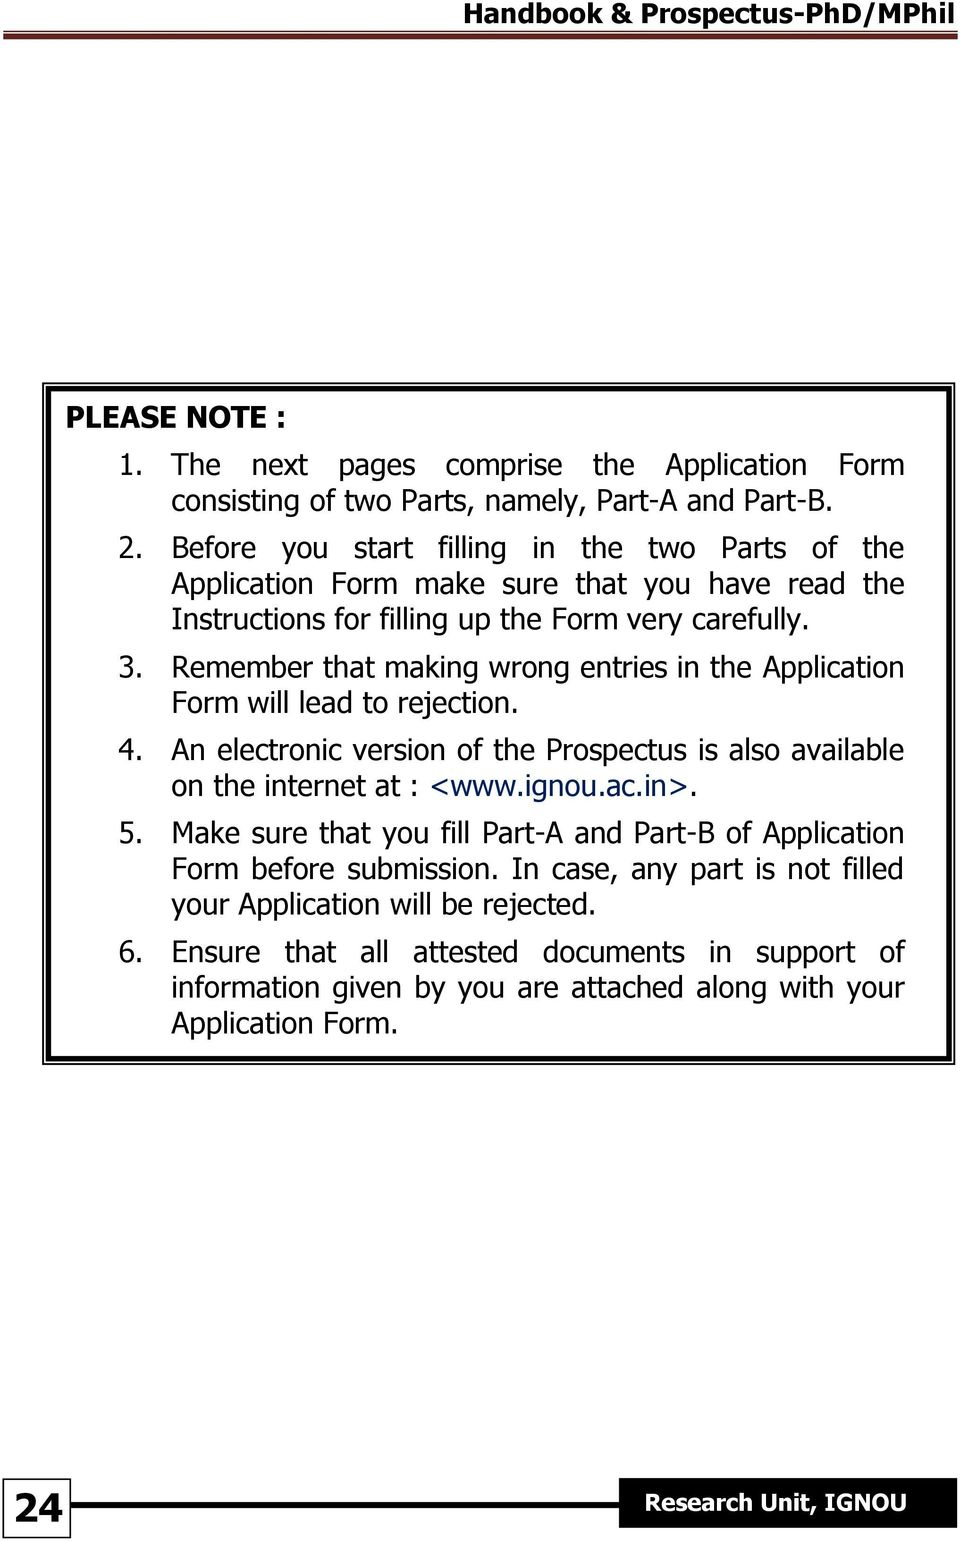 Remember that making wrong entries in the Application Form will lead to rejection. 4. An electronic version of the Prospectus is also available on the internet at : <www.ignou.ac.in>.